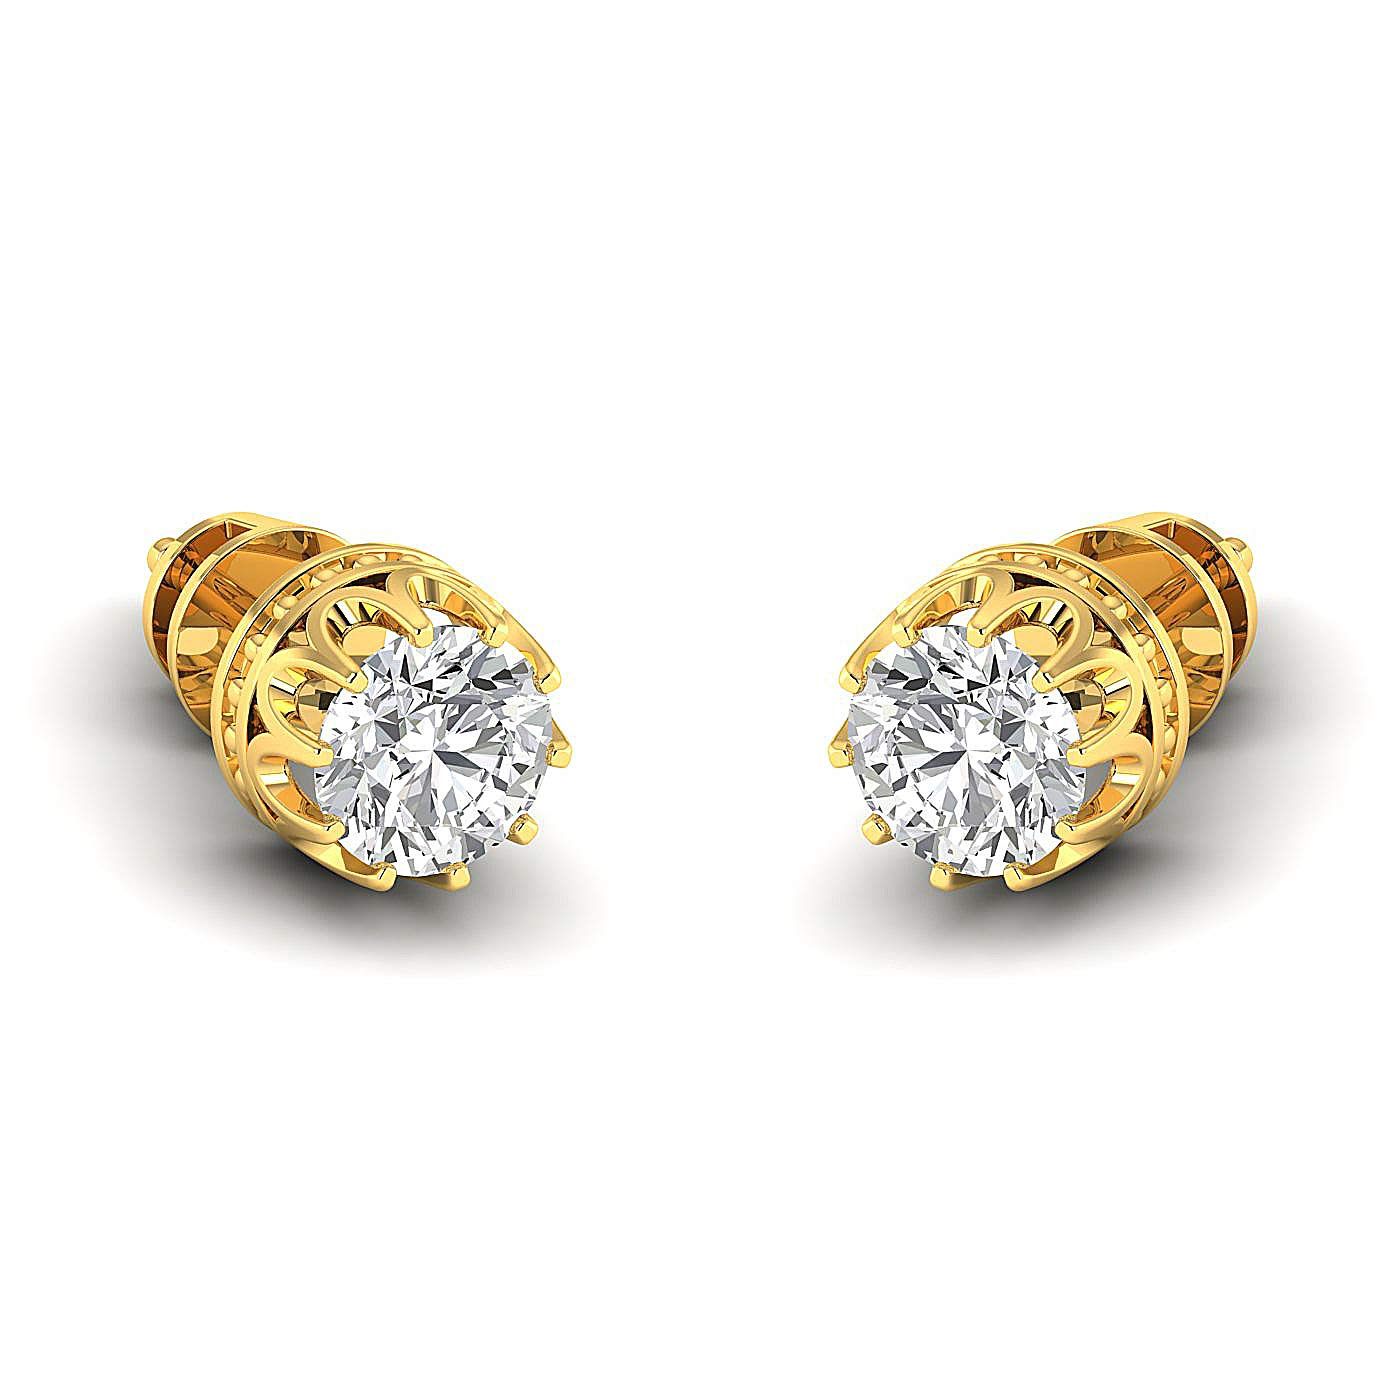 Stud Earrings for Women perfect Jewelry Gifts for Women Teen Girls GH//VVS Round Brilliant Earring Studs 0.3 to 4 Carat Moissanite Stud Earrings 14K yellow-gold